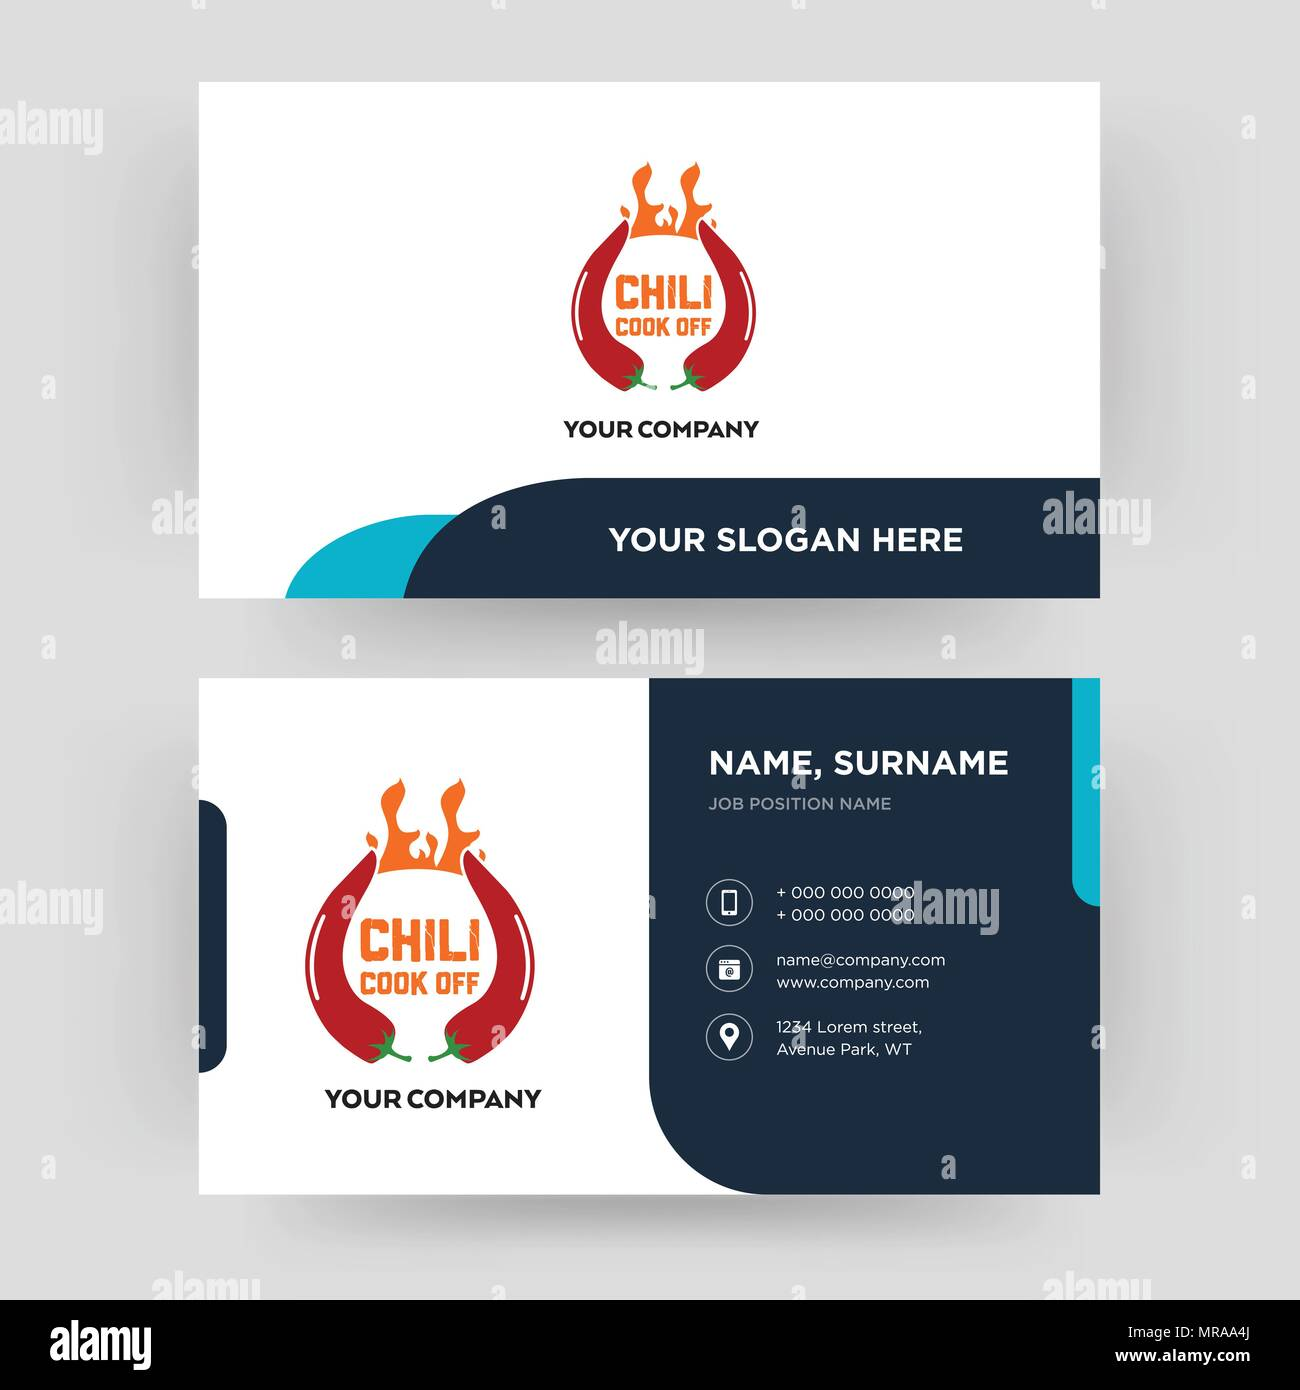 chili cook off, business card design template, Visiting for your ...